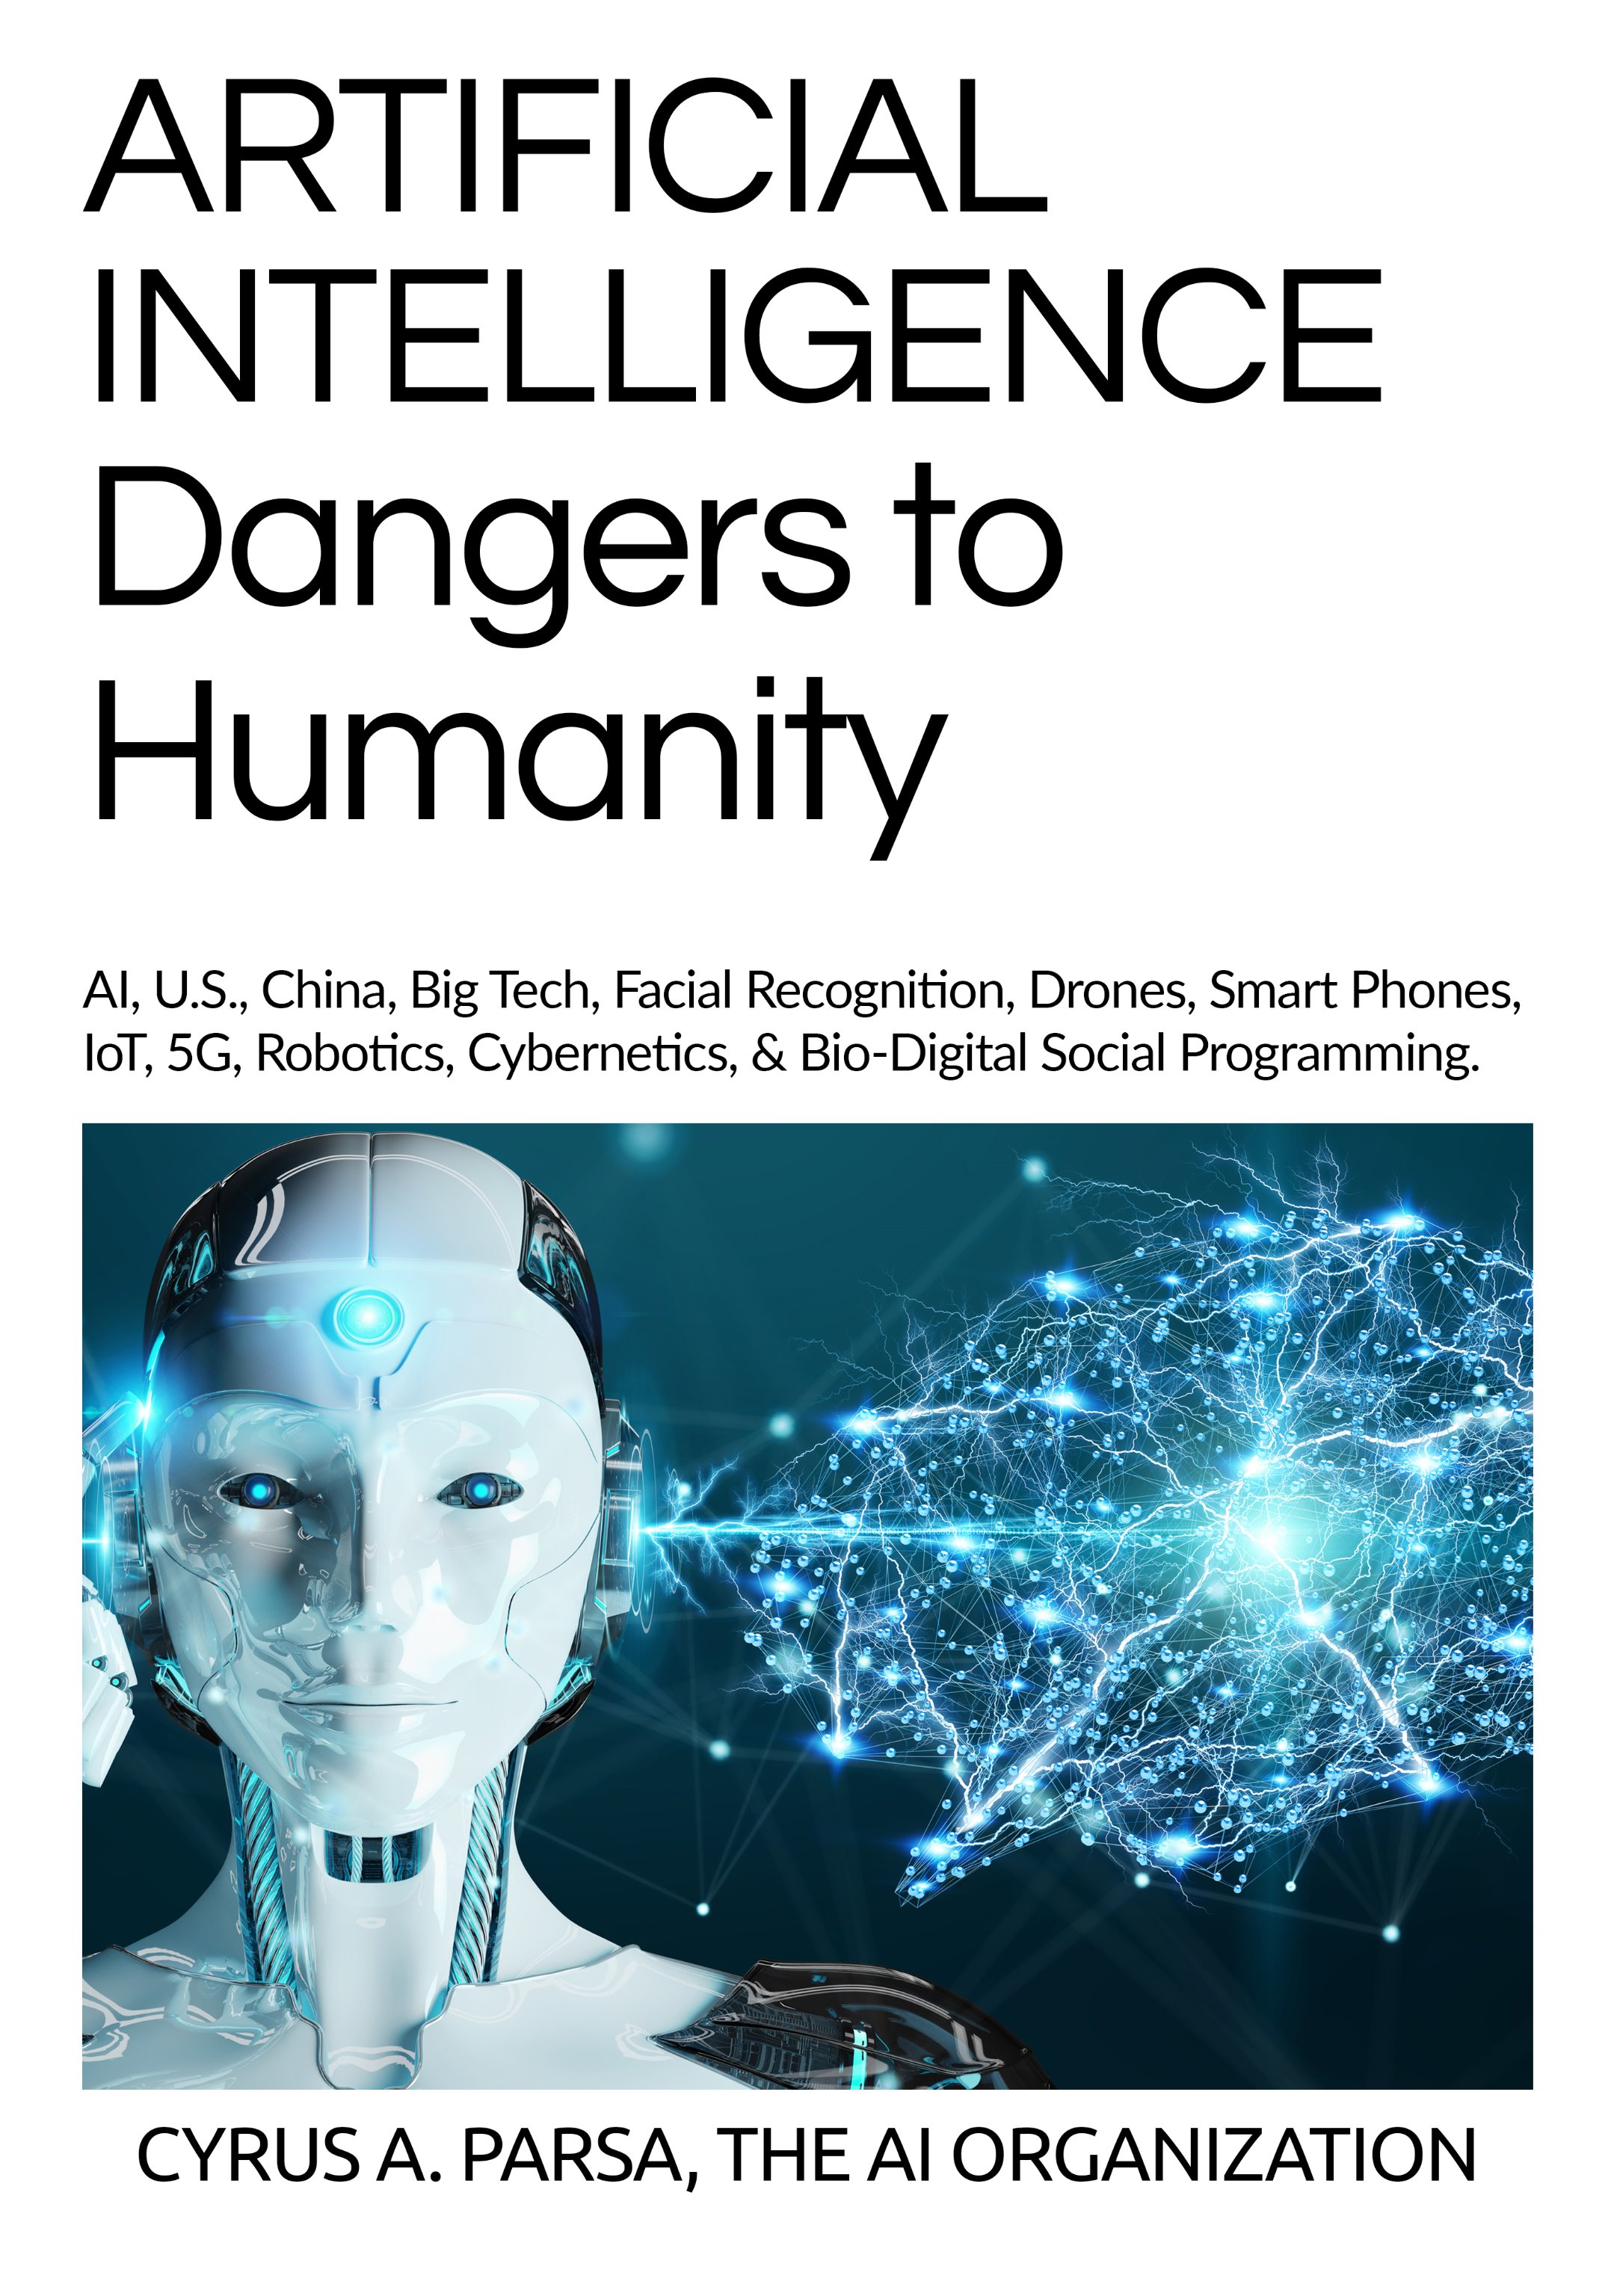 ARTIFICIAL INTELLIGENCE DANGERS TO HUMANITY - Via SGT